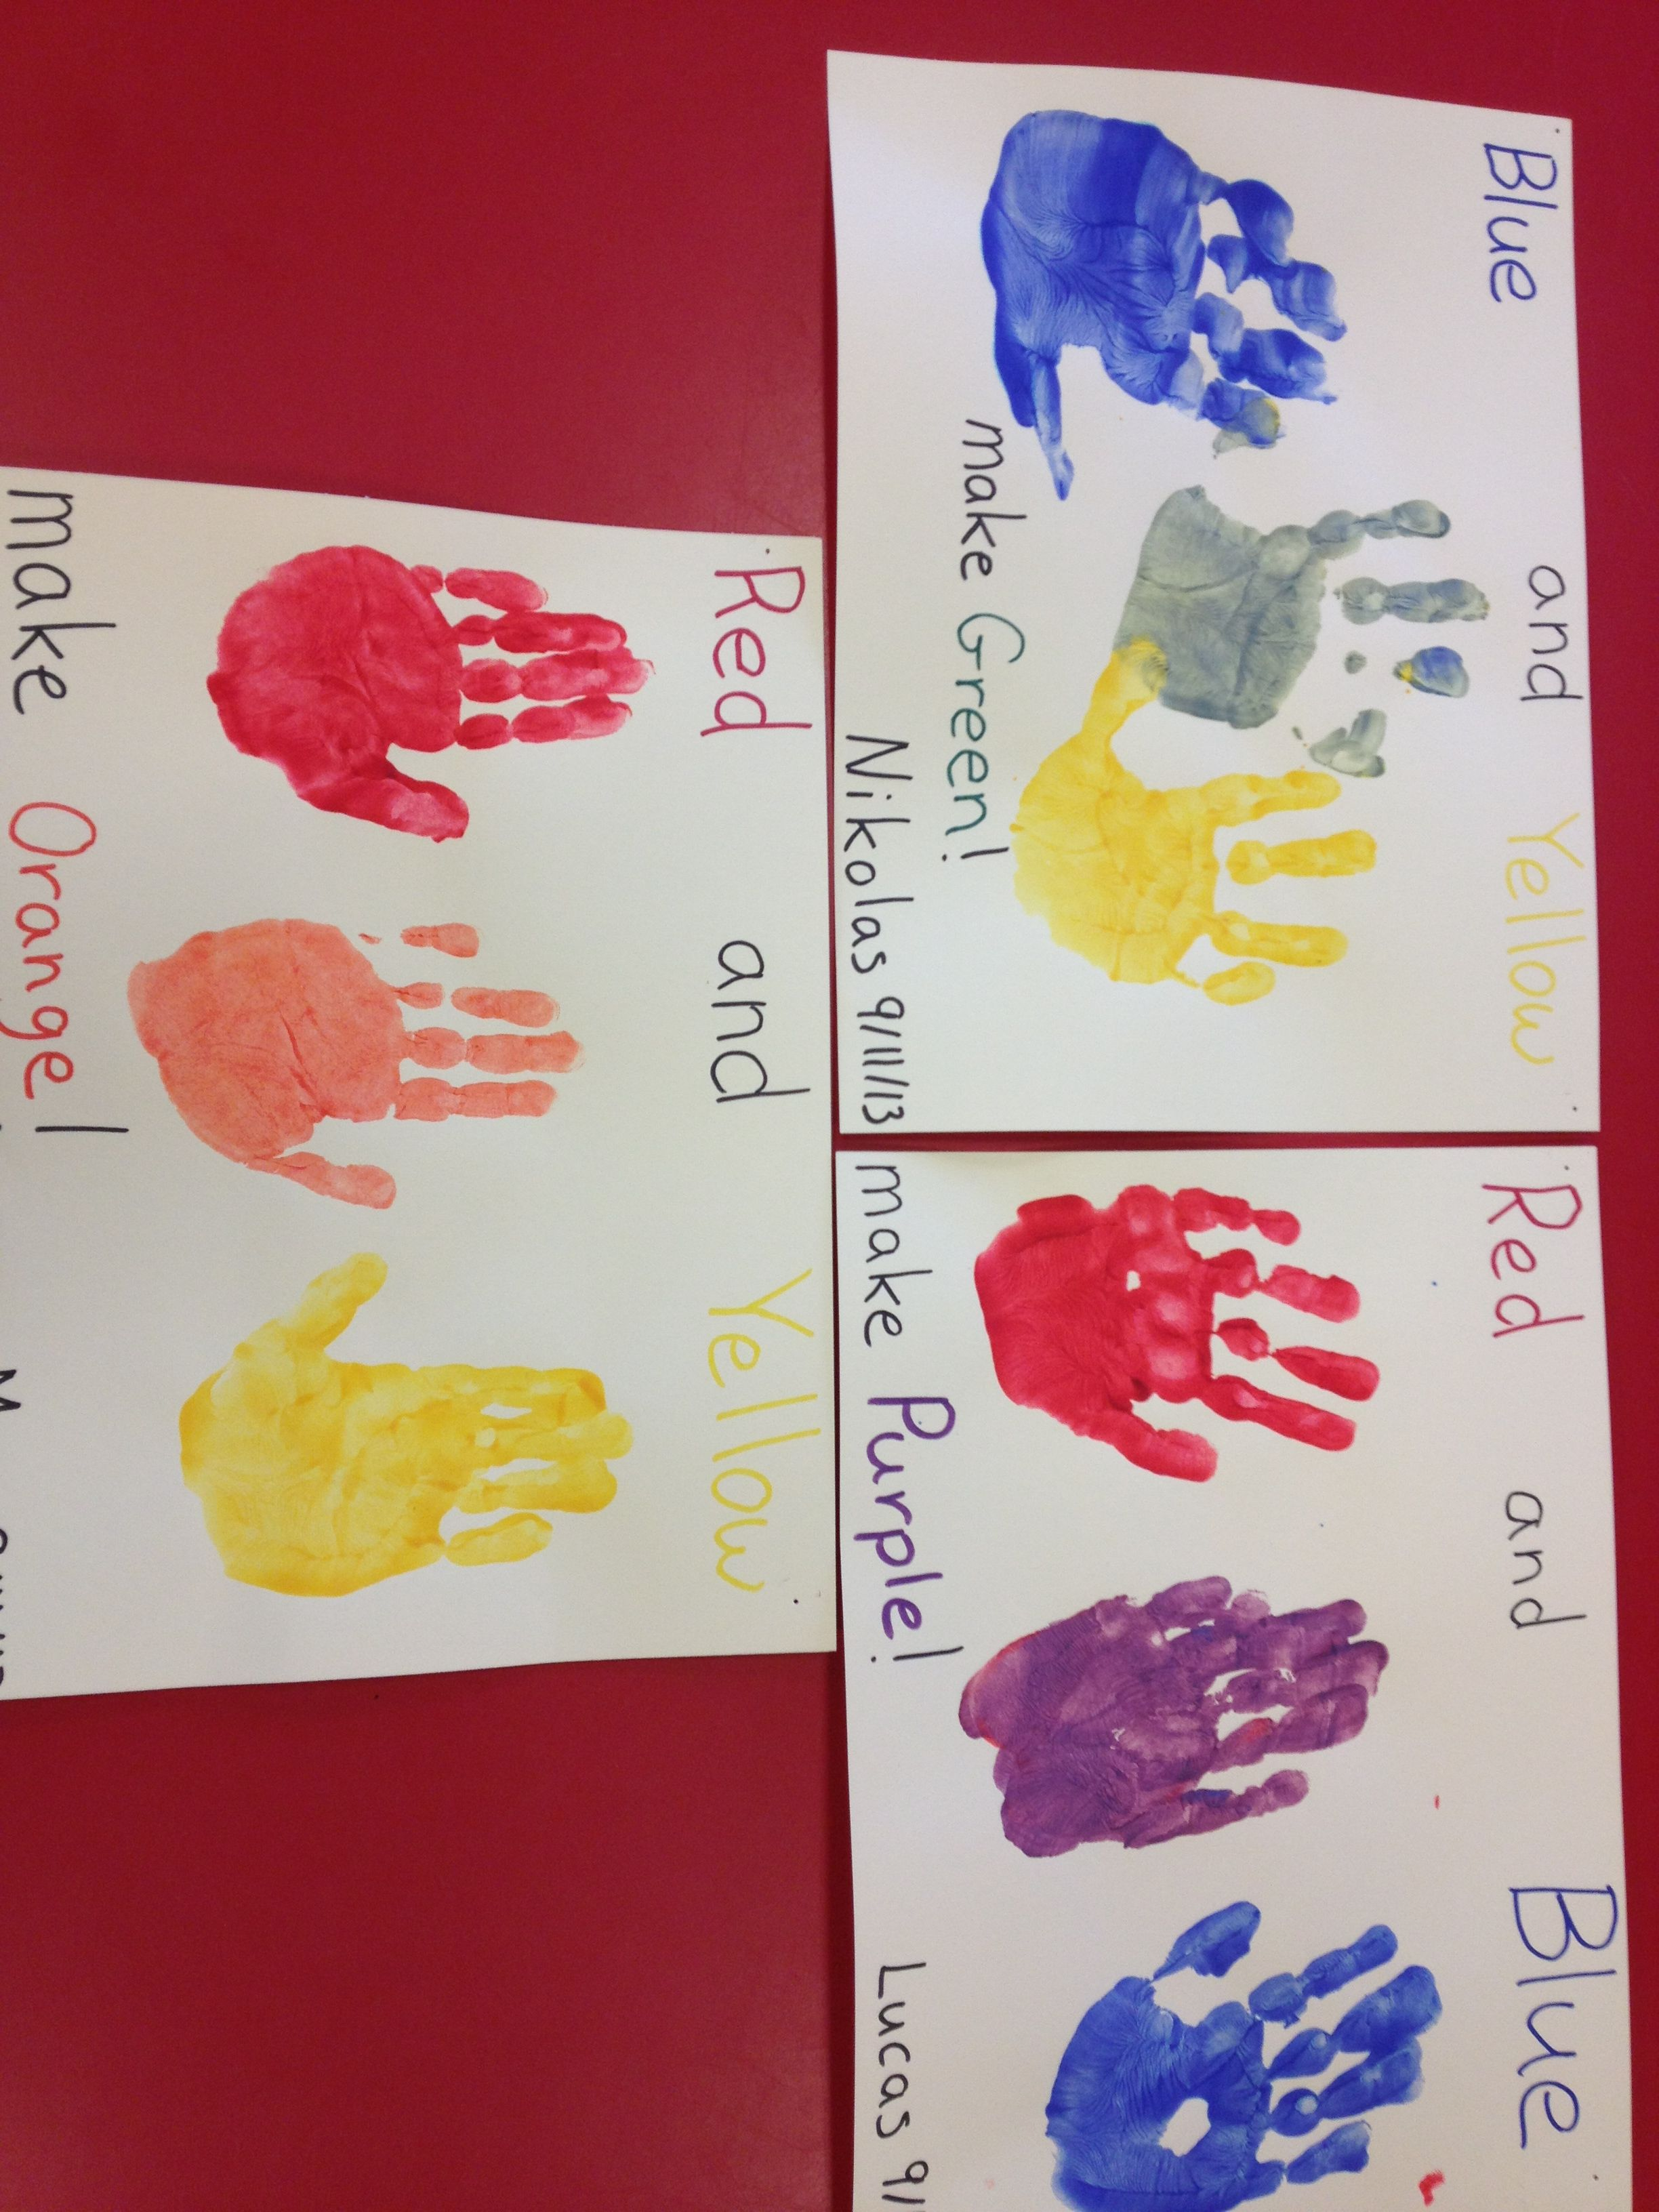 Preschool Color Mixing Paint Each Hand A Different Primary Color Then Have The Child Rub Their